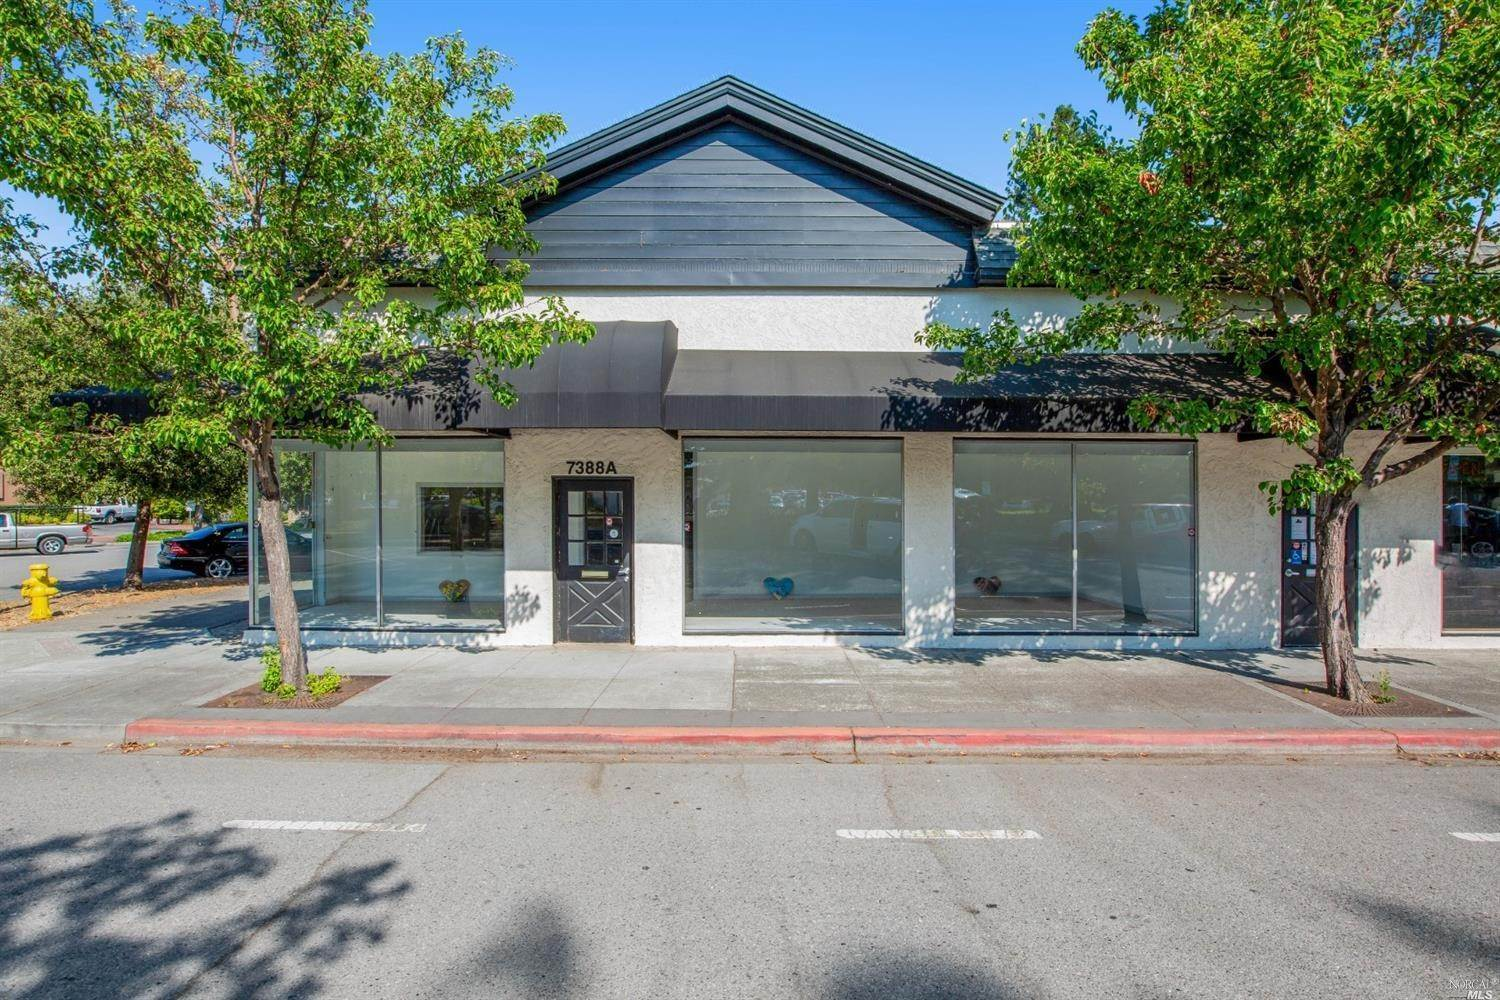 Property at 7388 Redwood Boulevard Novato, カリフォルニア 94945 アメリカ